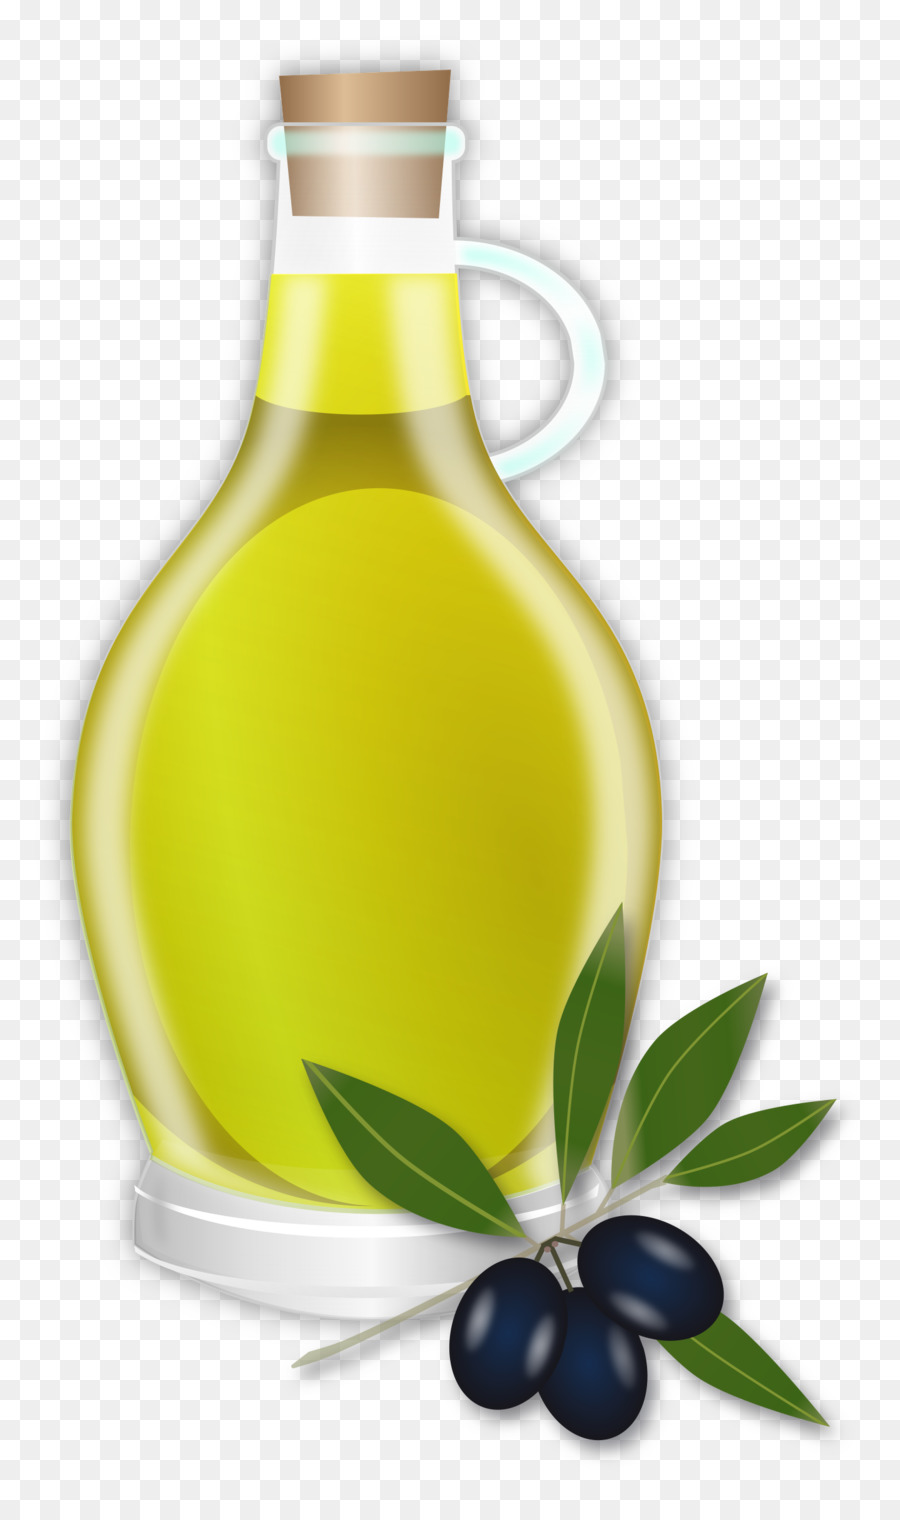 Olive oil bottle clipart black and white download Olive Oil clipart - Bottle, Food, transparent clip art black and white download